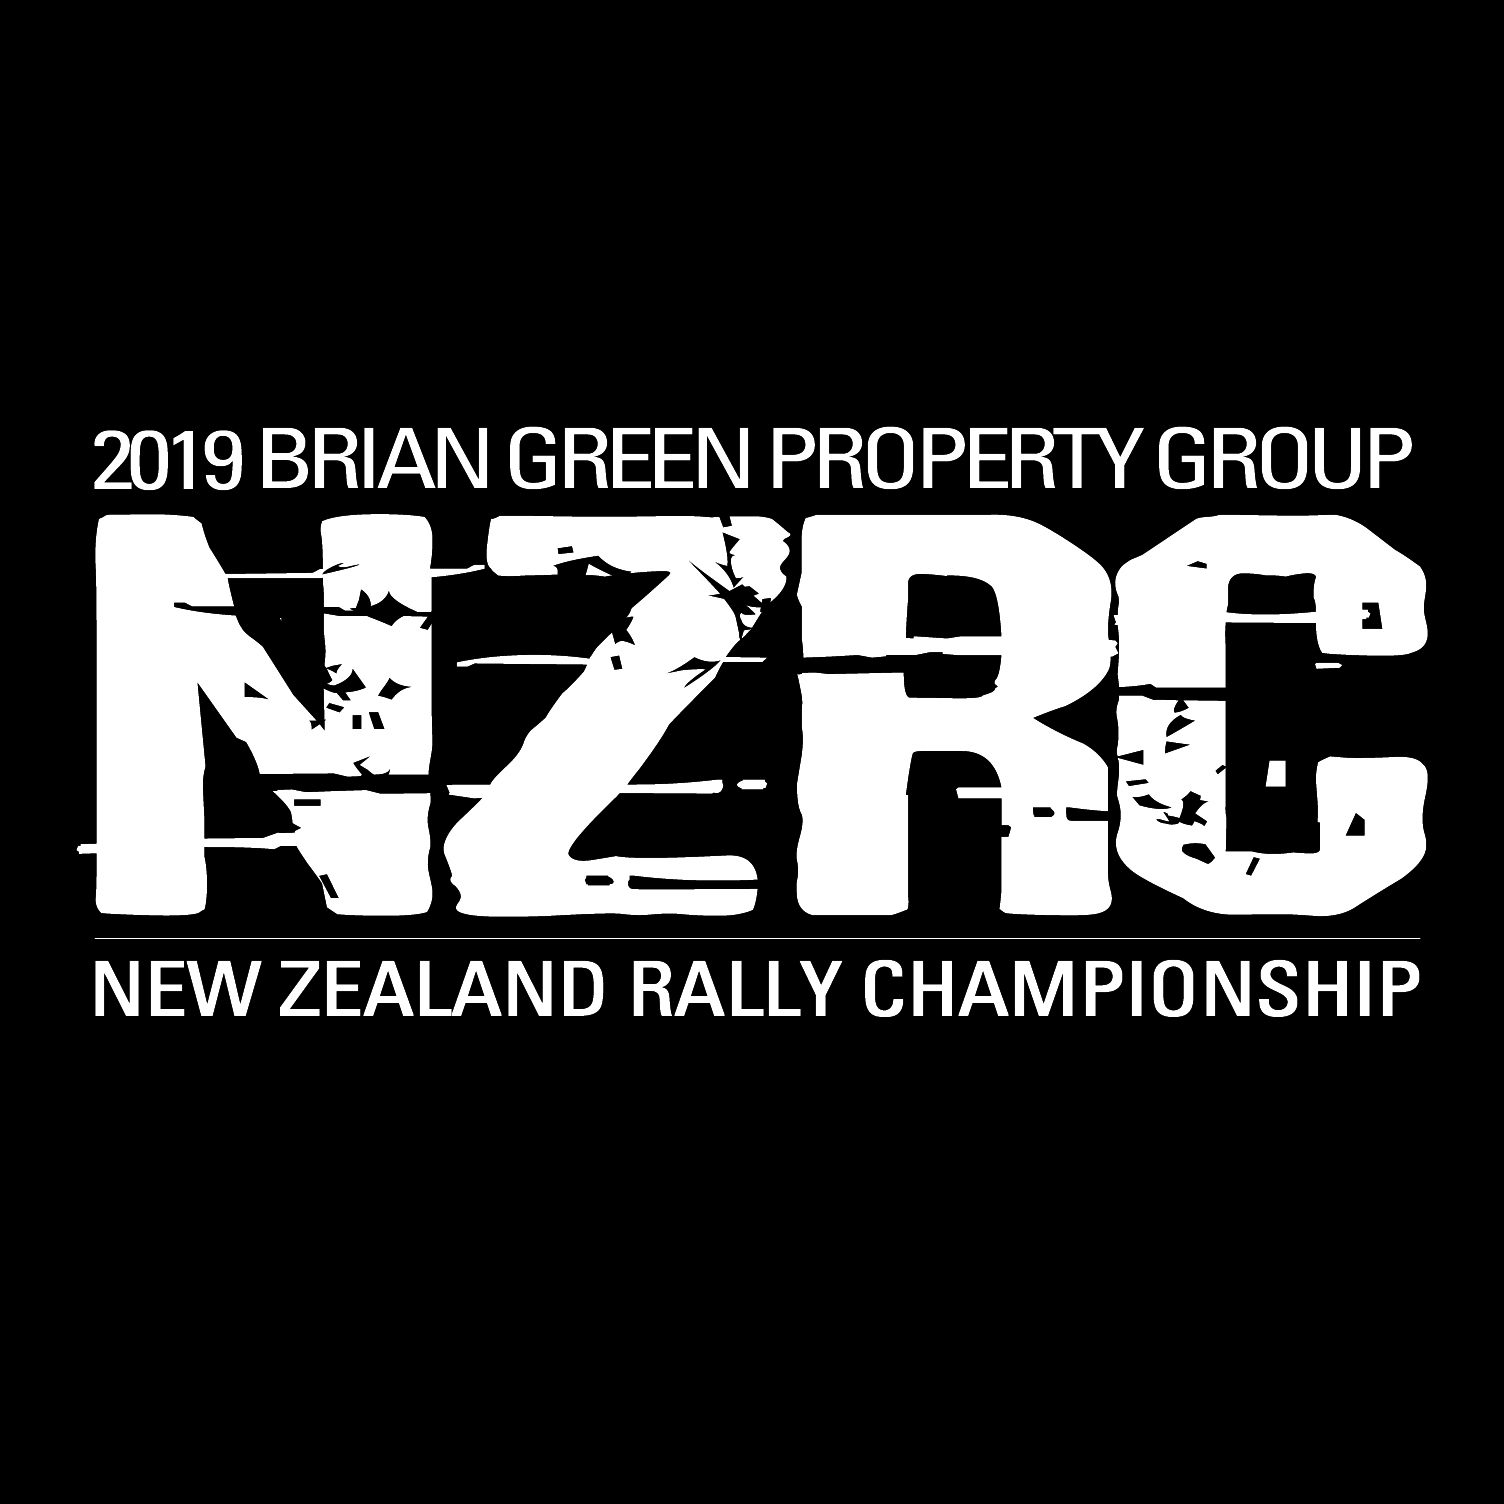 Stunning result for Jensen a sign of things to come? | :: Brian Green Property Group New Zealand Rally Championship ::